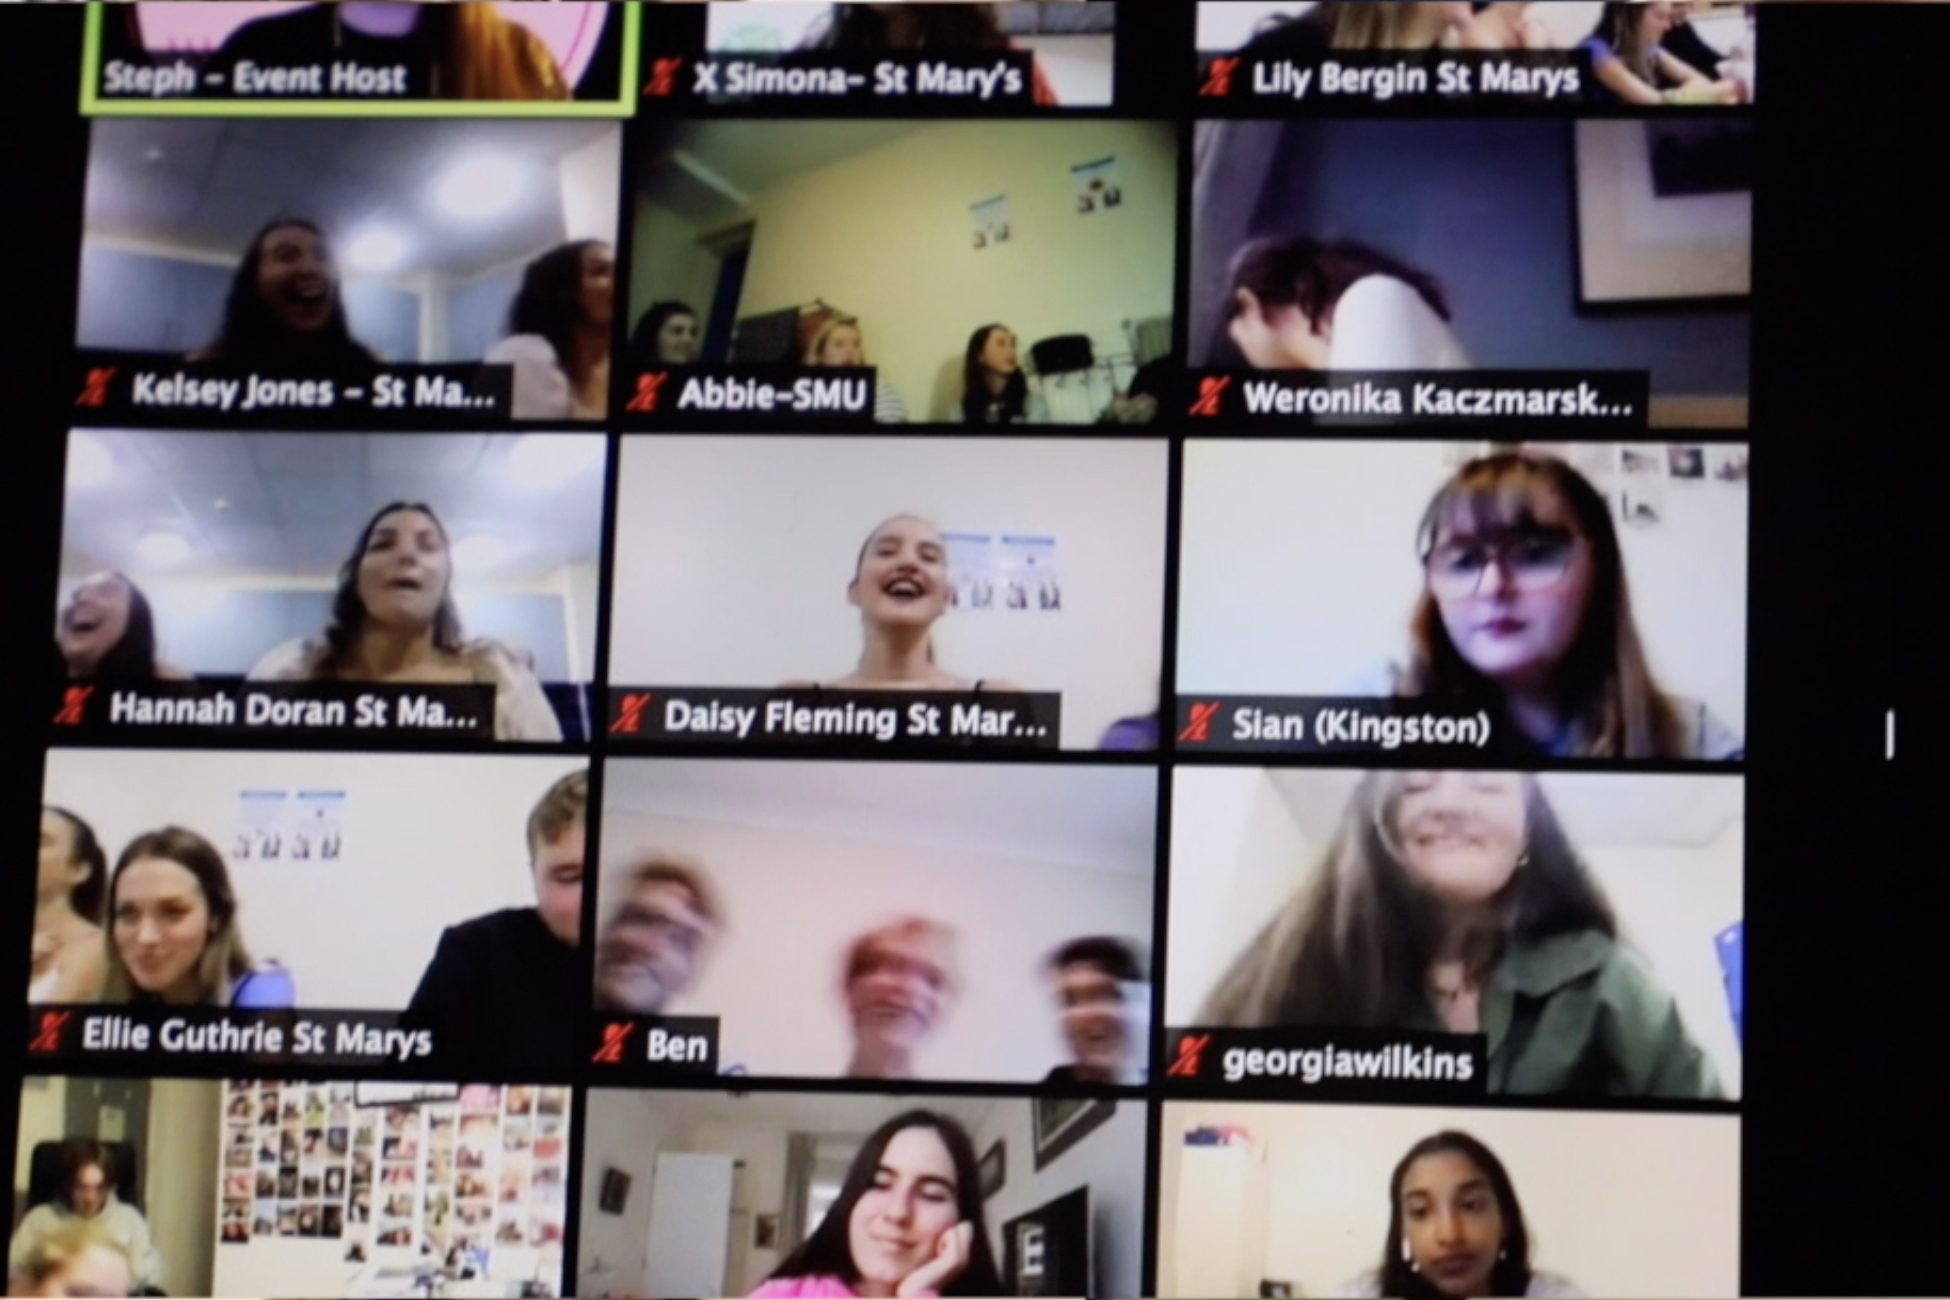 Some students socialising on Zoom